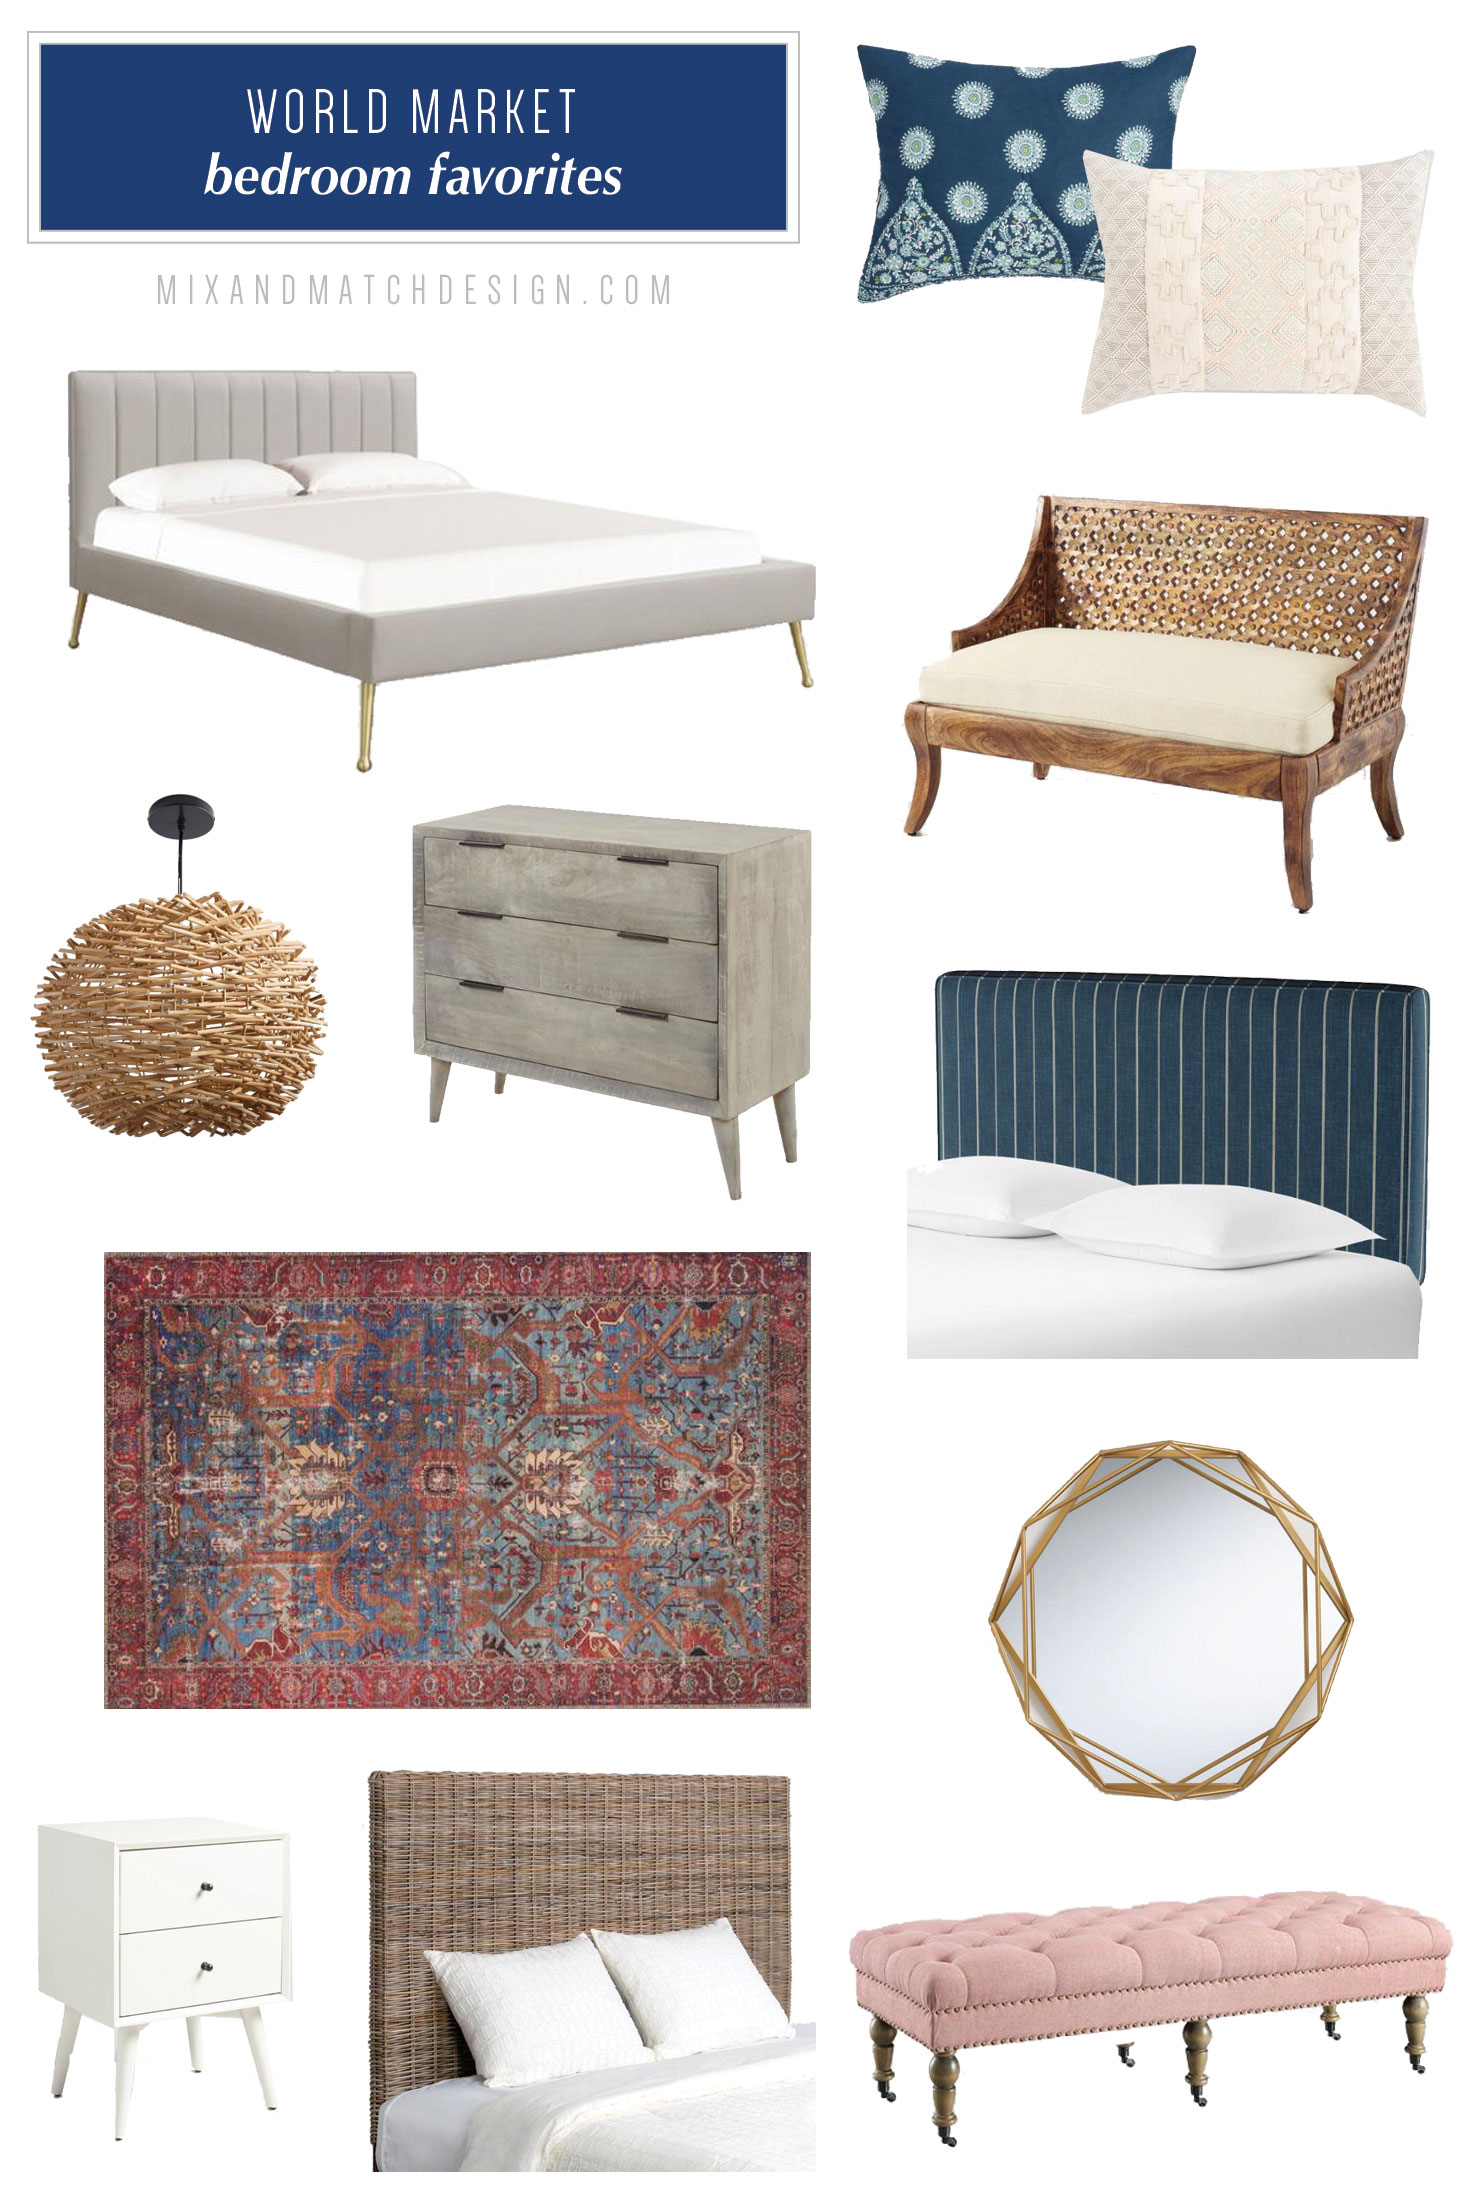 World Market is one of my favorite places to shop for global, mid-century, and eclectic furniture and decor, and I've rounded up a bunch of my favorites for your bedroom to share with you! // #designerfinds #interiordesign #decor #eclecticdecor #globaldecor #decorating